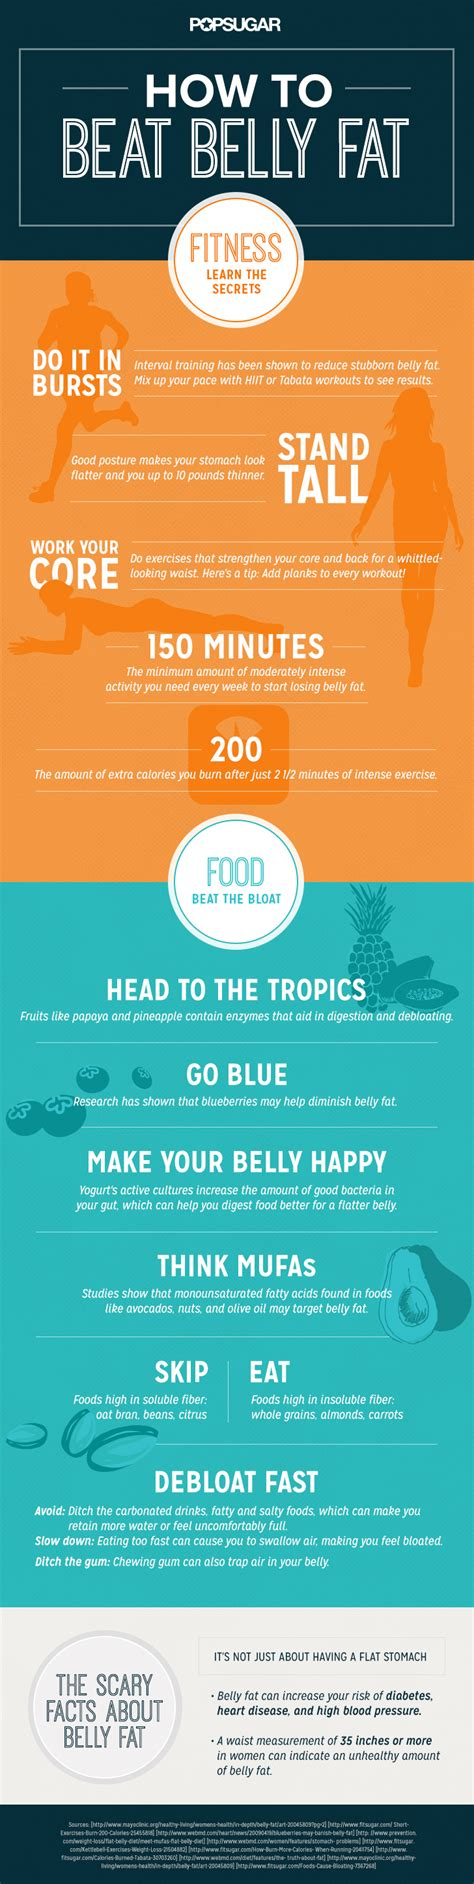 blueprint for dating smart s guide to finding quality books flat belly tips infographic popsugar fitness